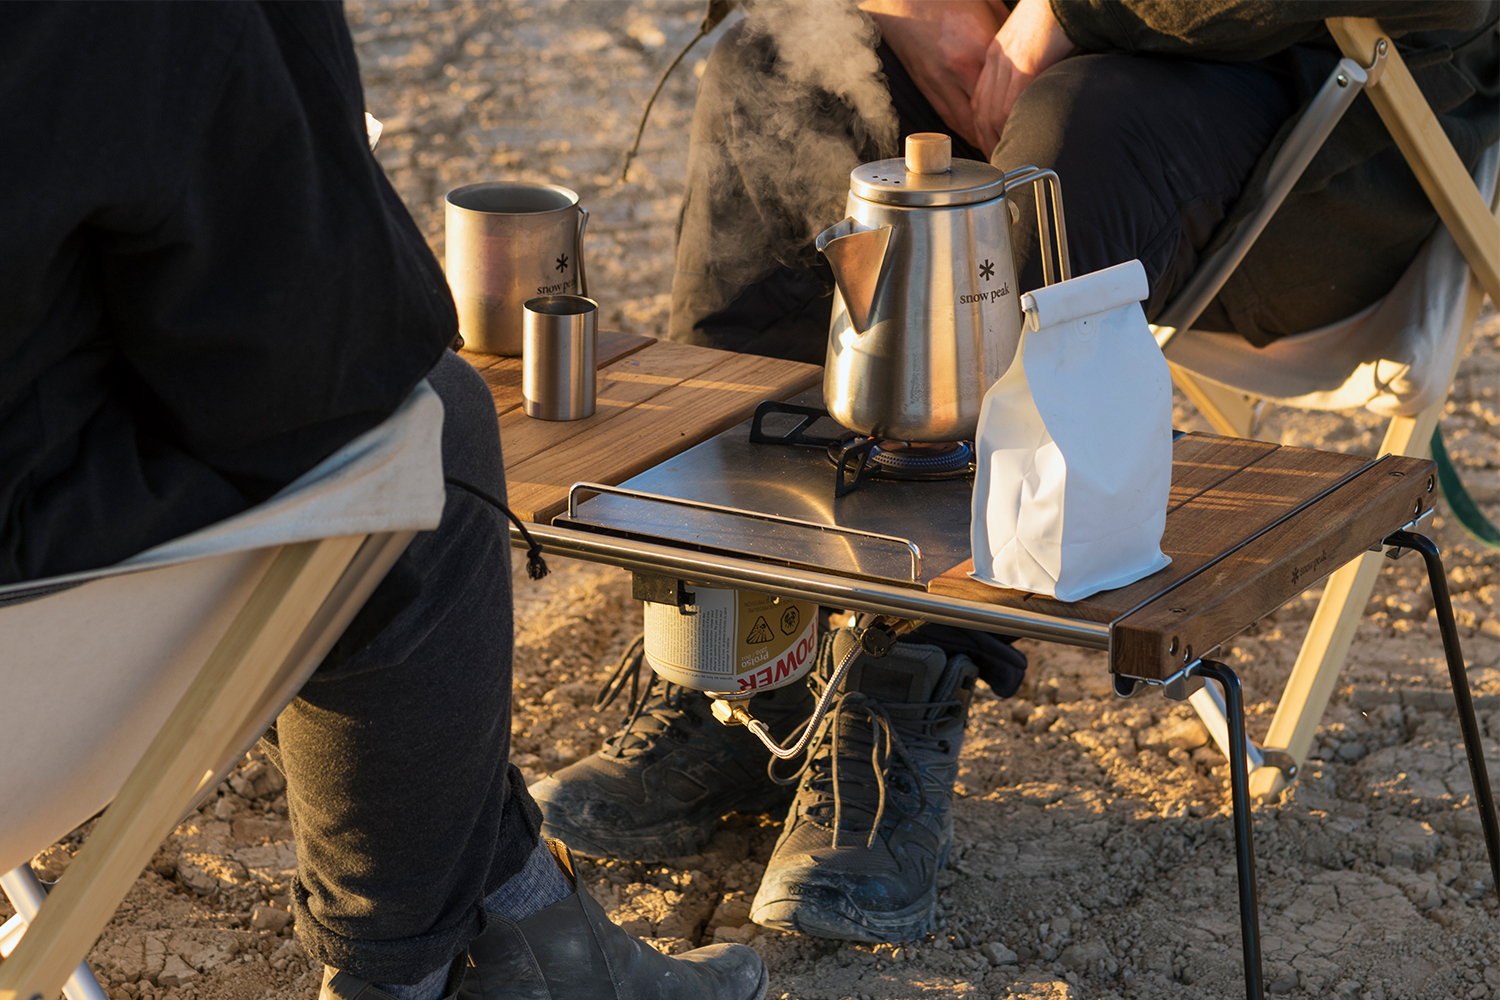 Snow Peak IGT Table and camping gear